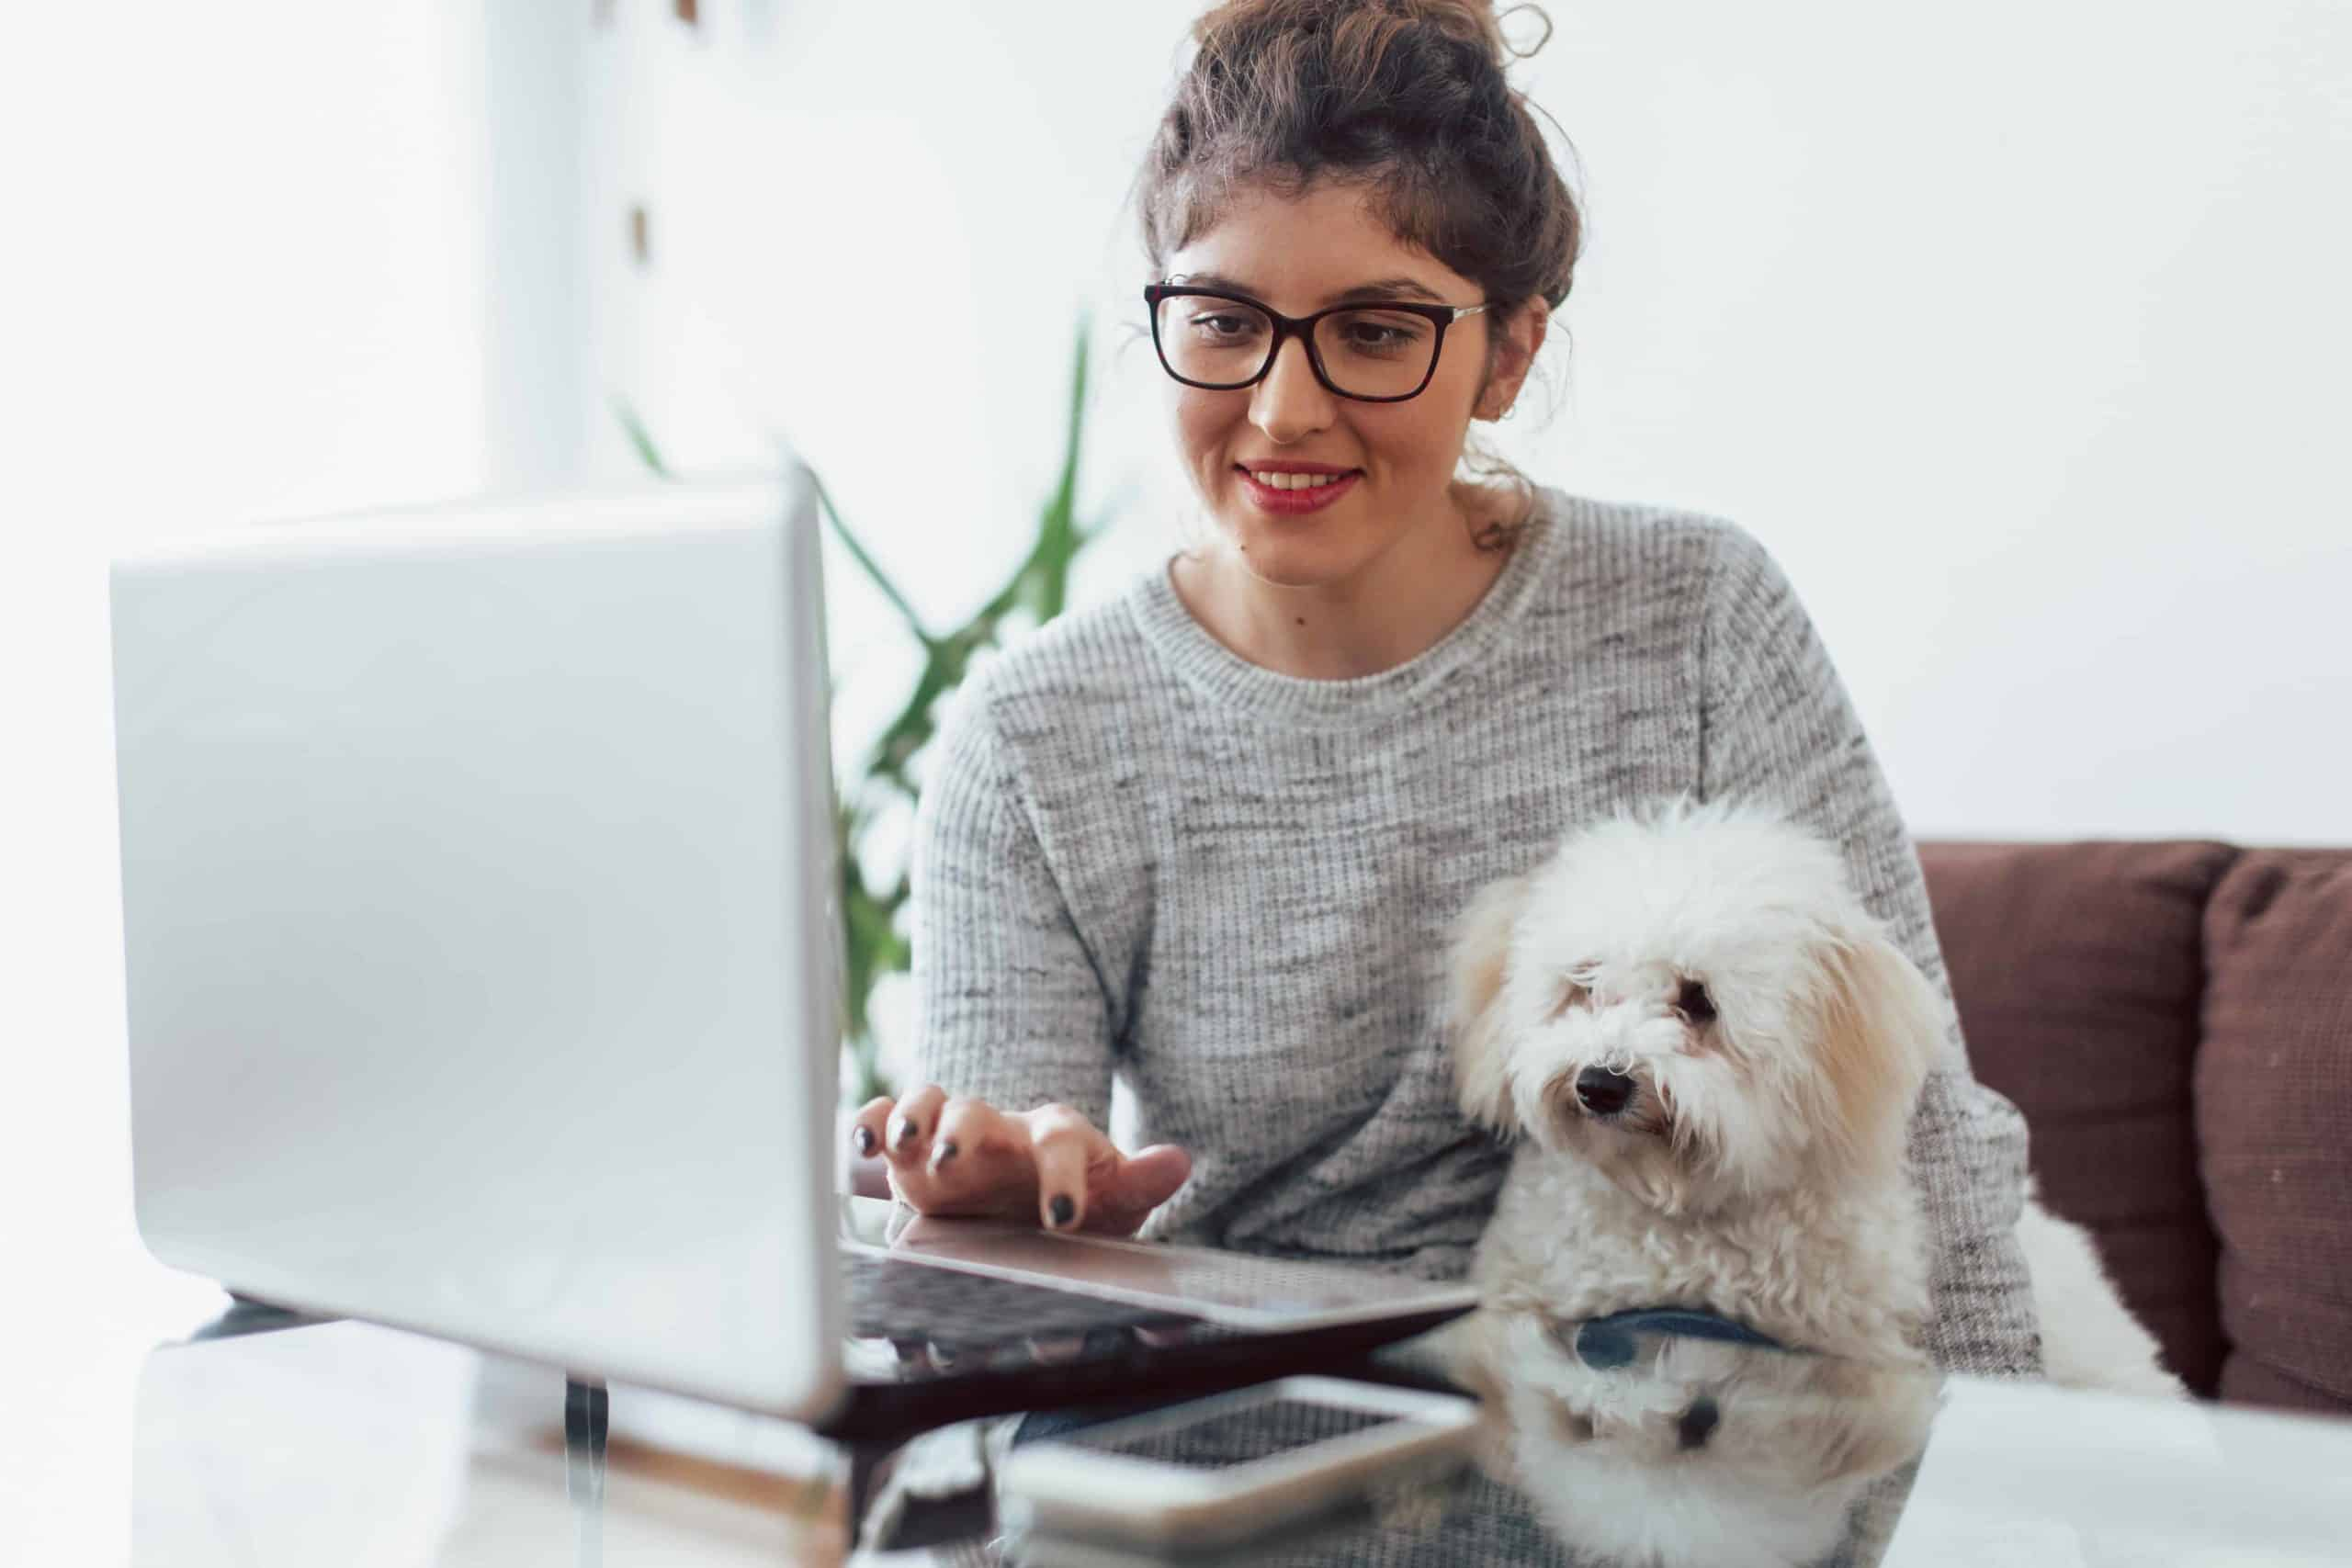 Female college student studies with bolognese dog sitting on her lap. Getting a dog gives college students confidence and love, helps them adjust to living in a new place, improves their mental health, and teaches responsibility.